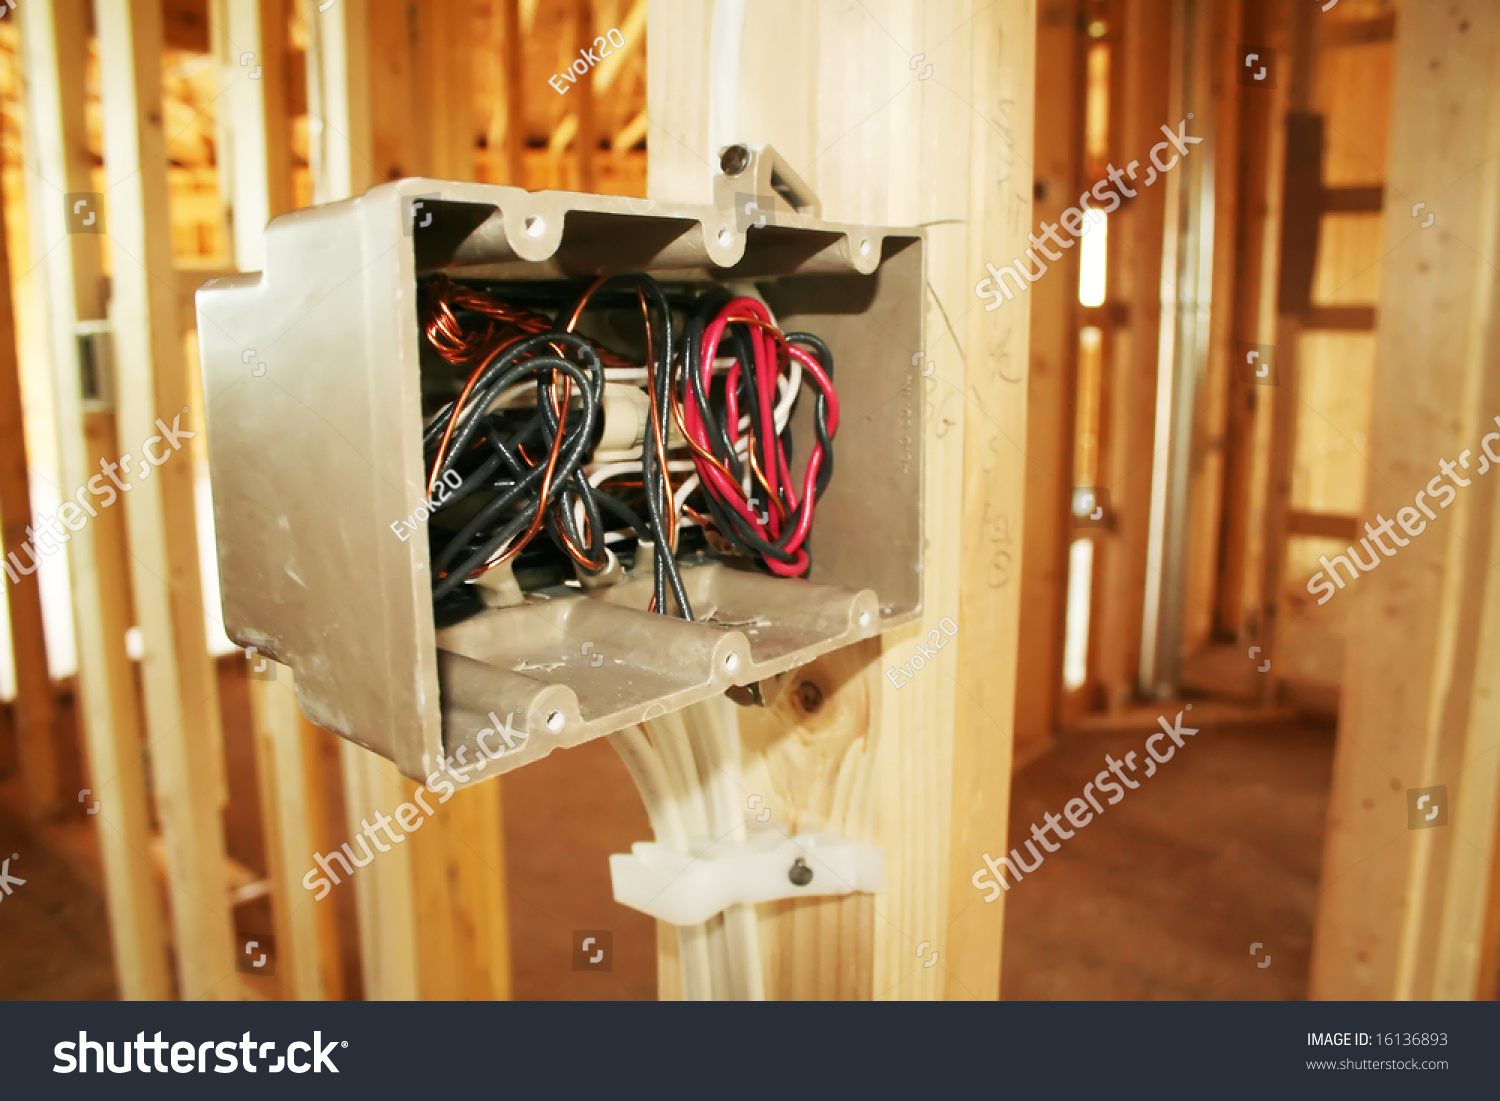 Electrical box with wiring in a new home under construction